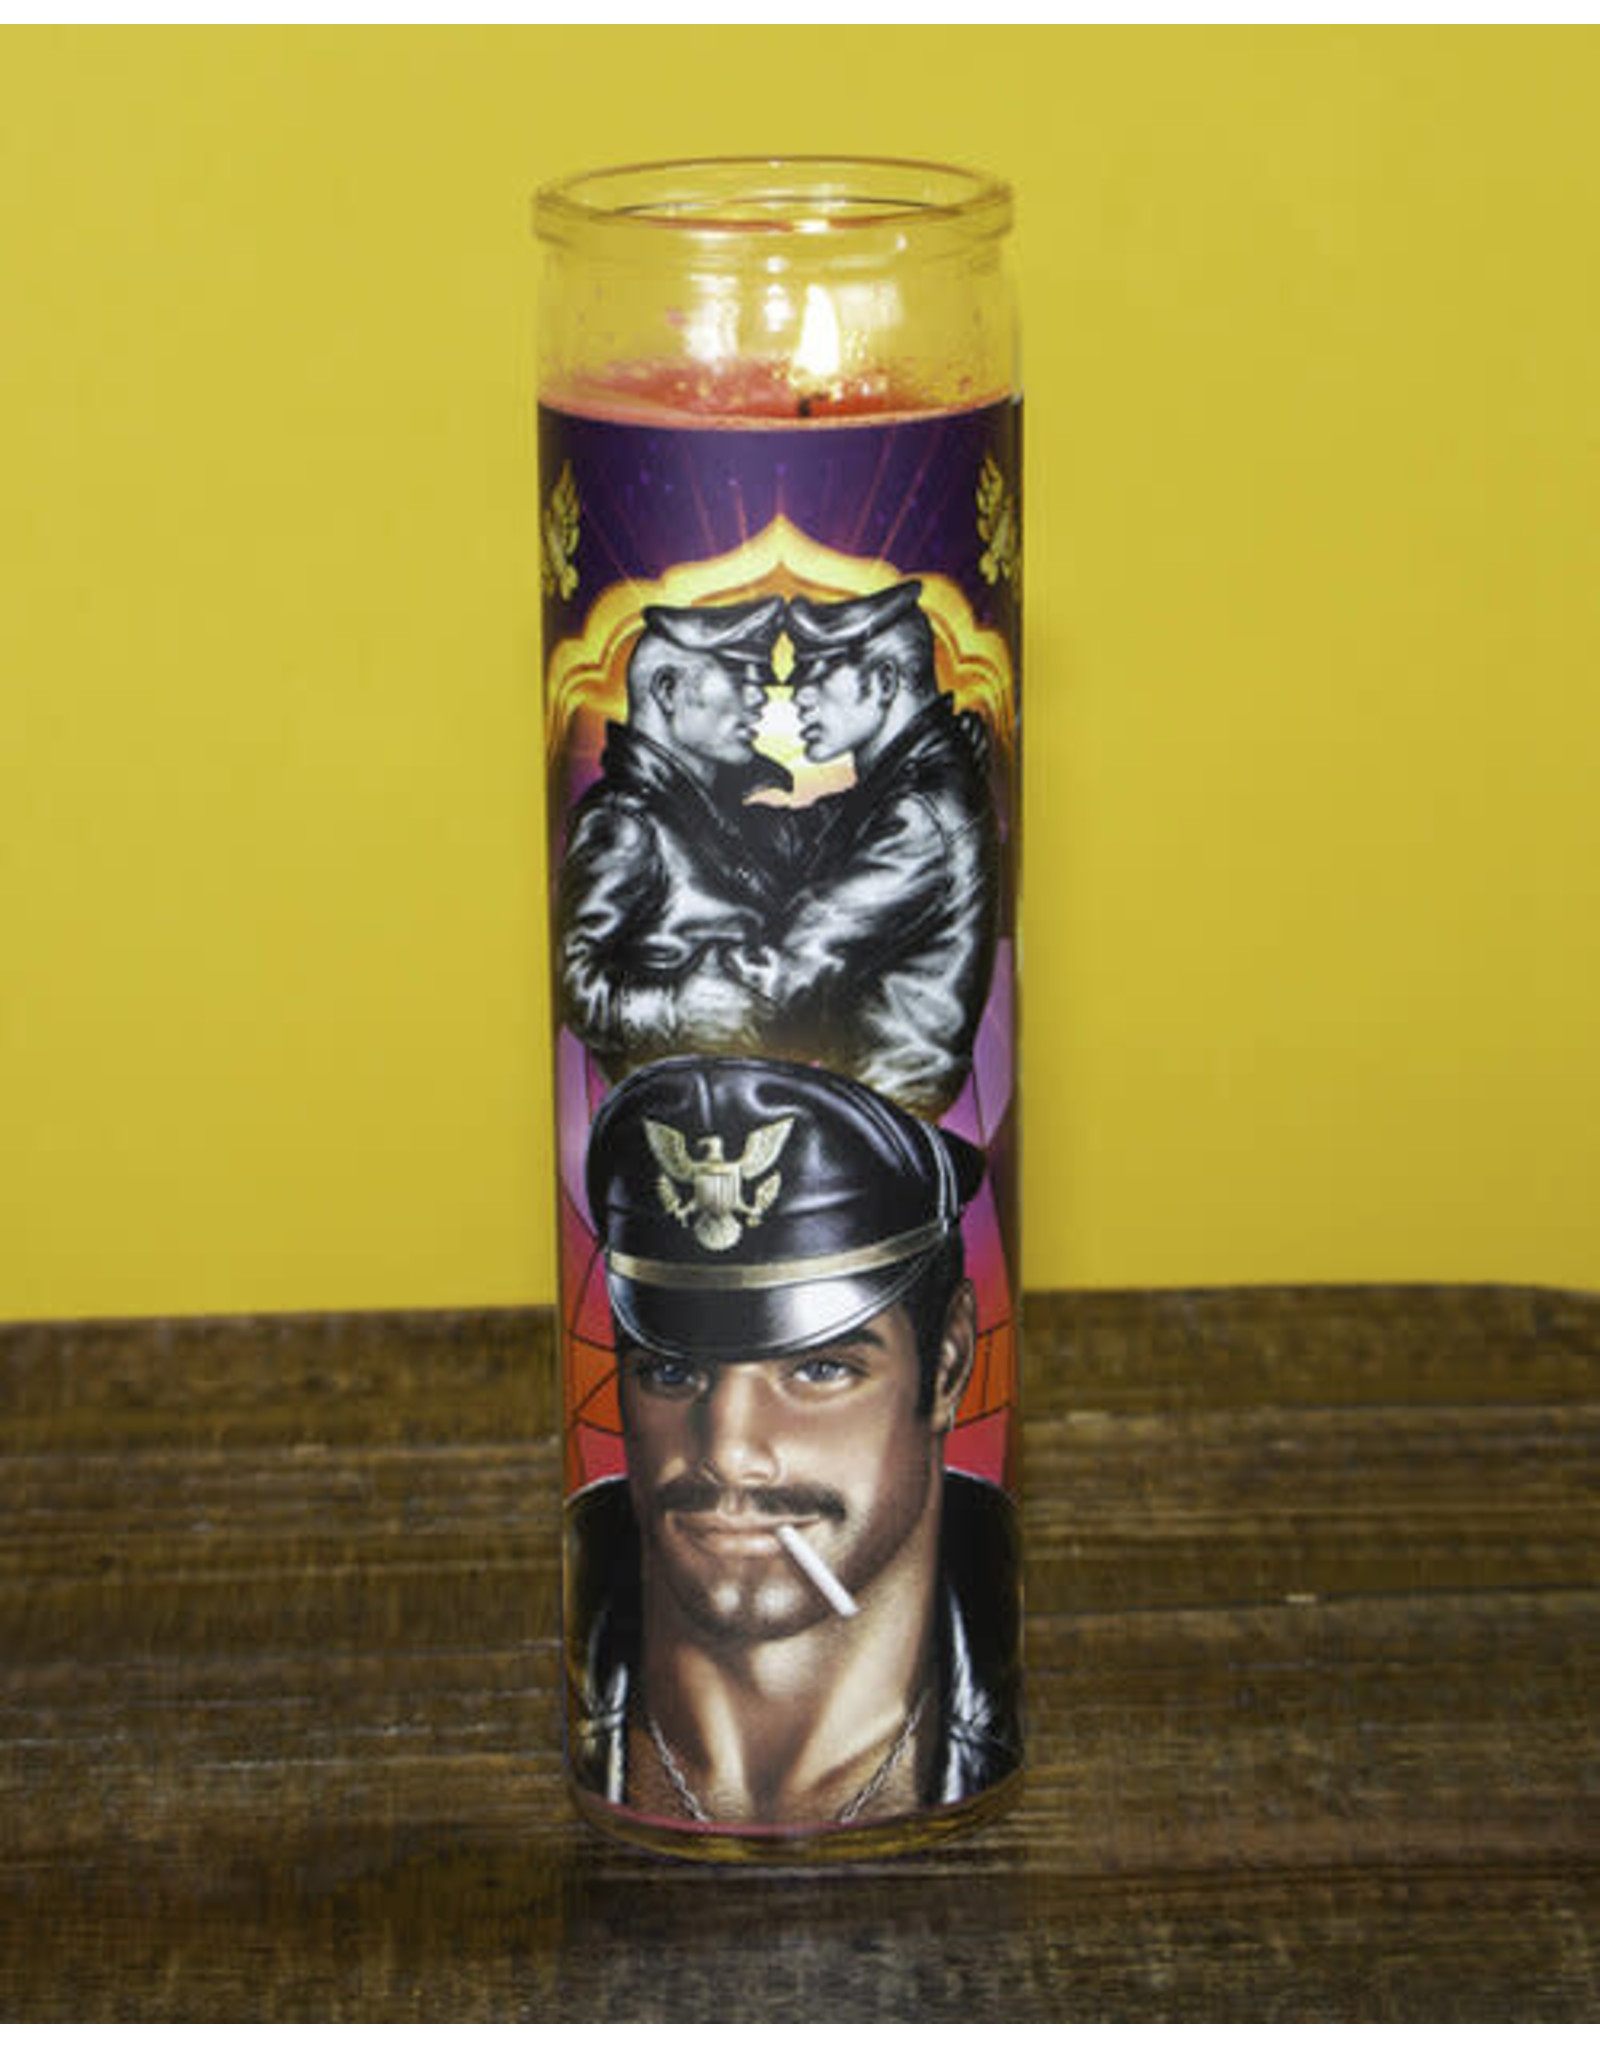 Peachy Kings Tom of Finland Prayer Candles